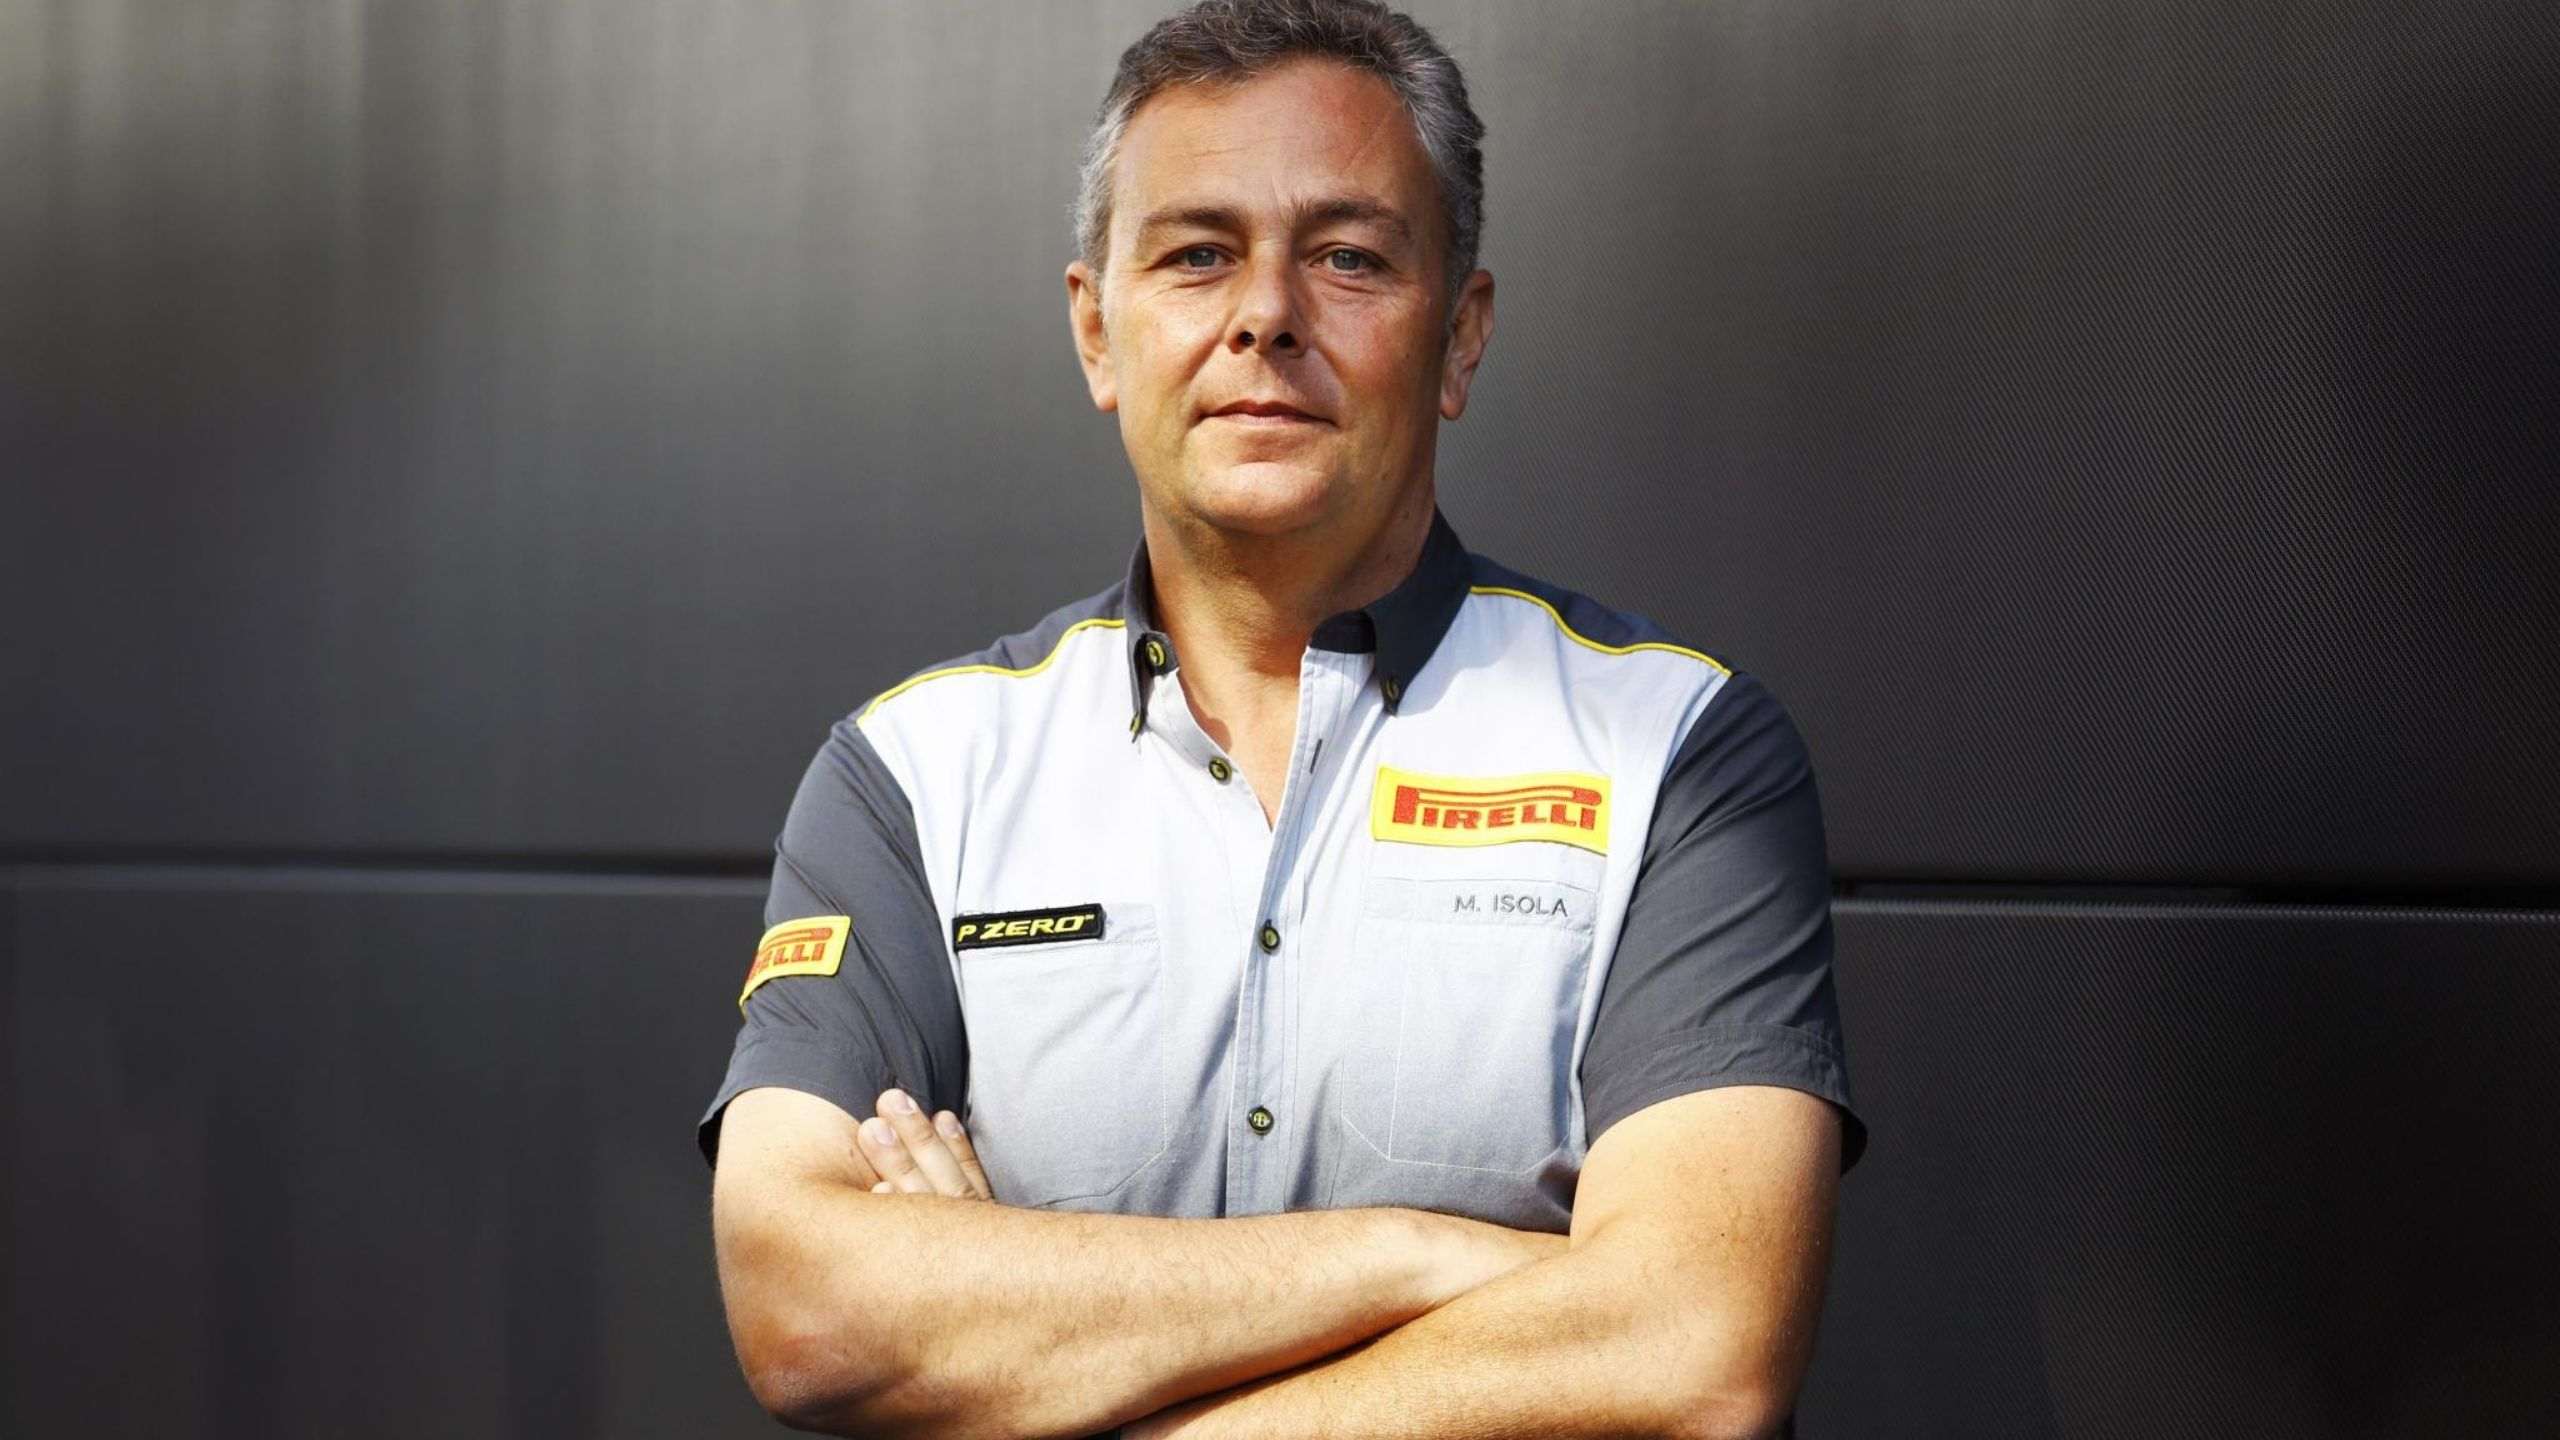 Bahrain GP: Pirelli F1 chief defends 2021 prototype tyres after criticism from Lewis Hamilton and Max Verstappen